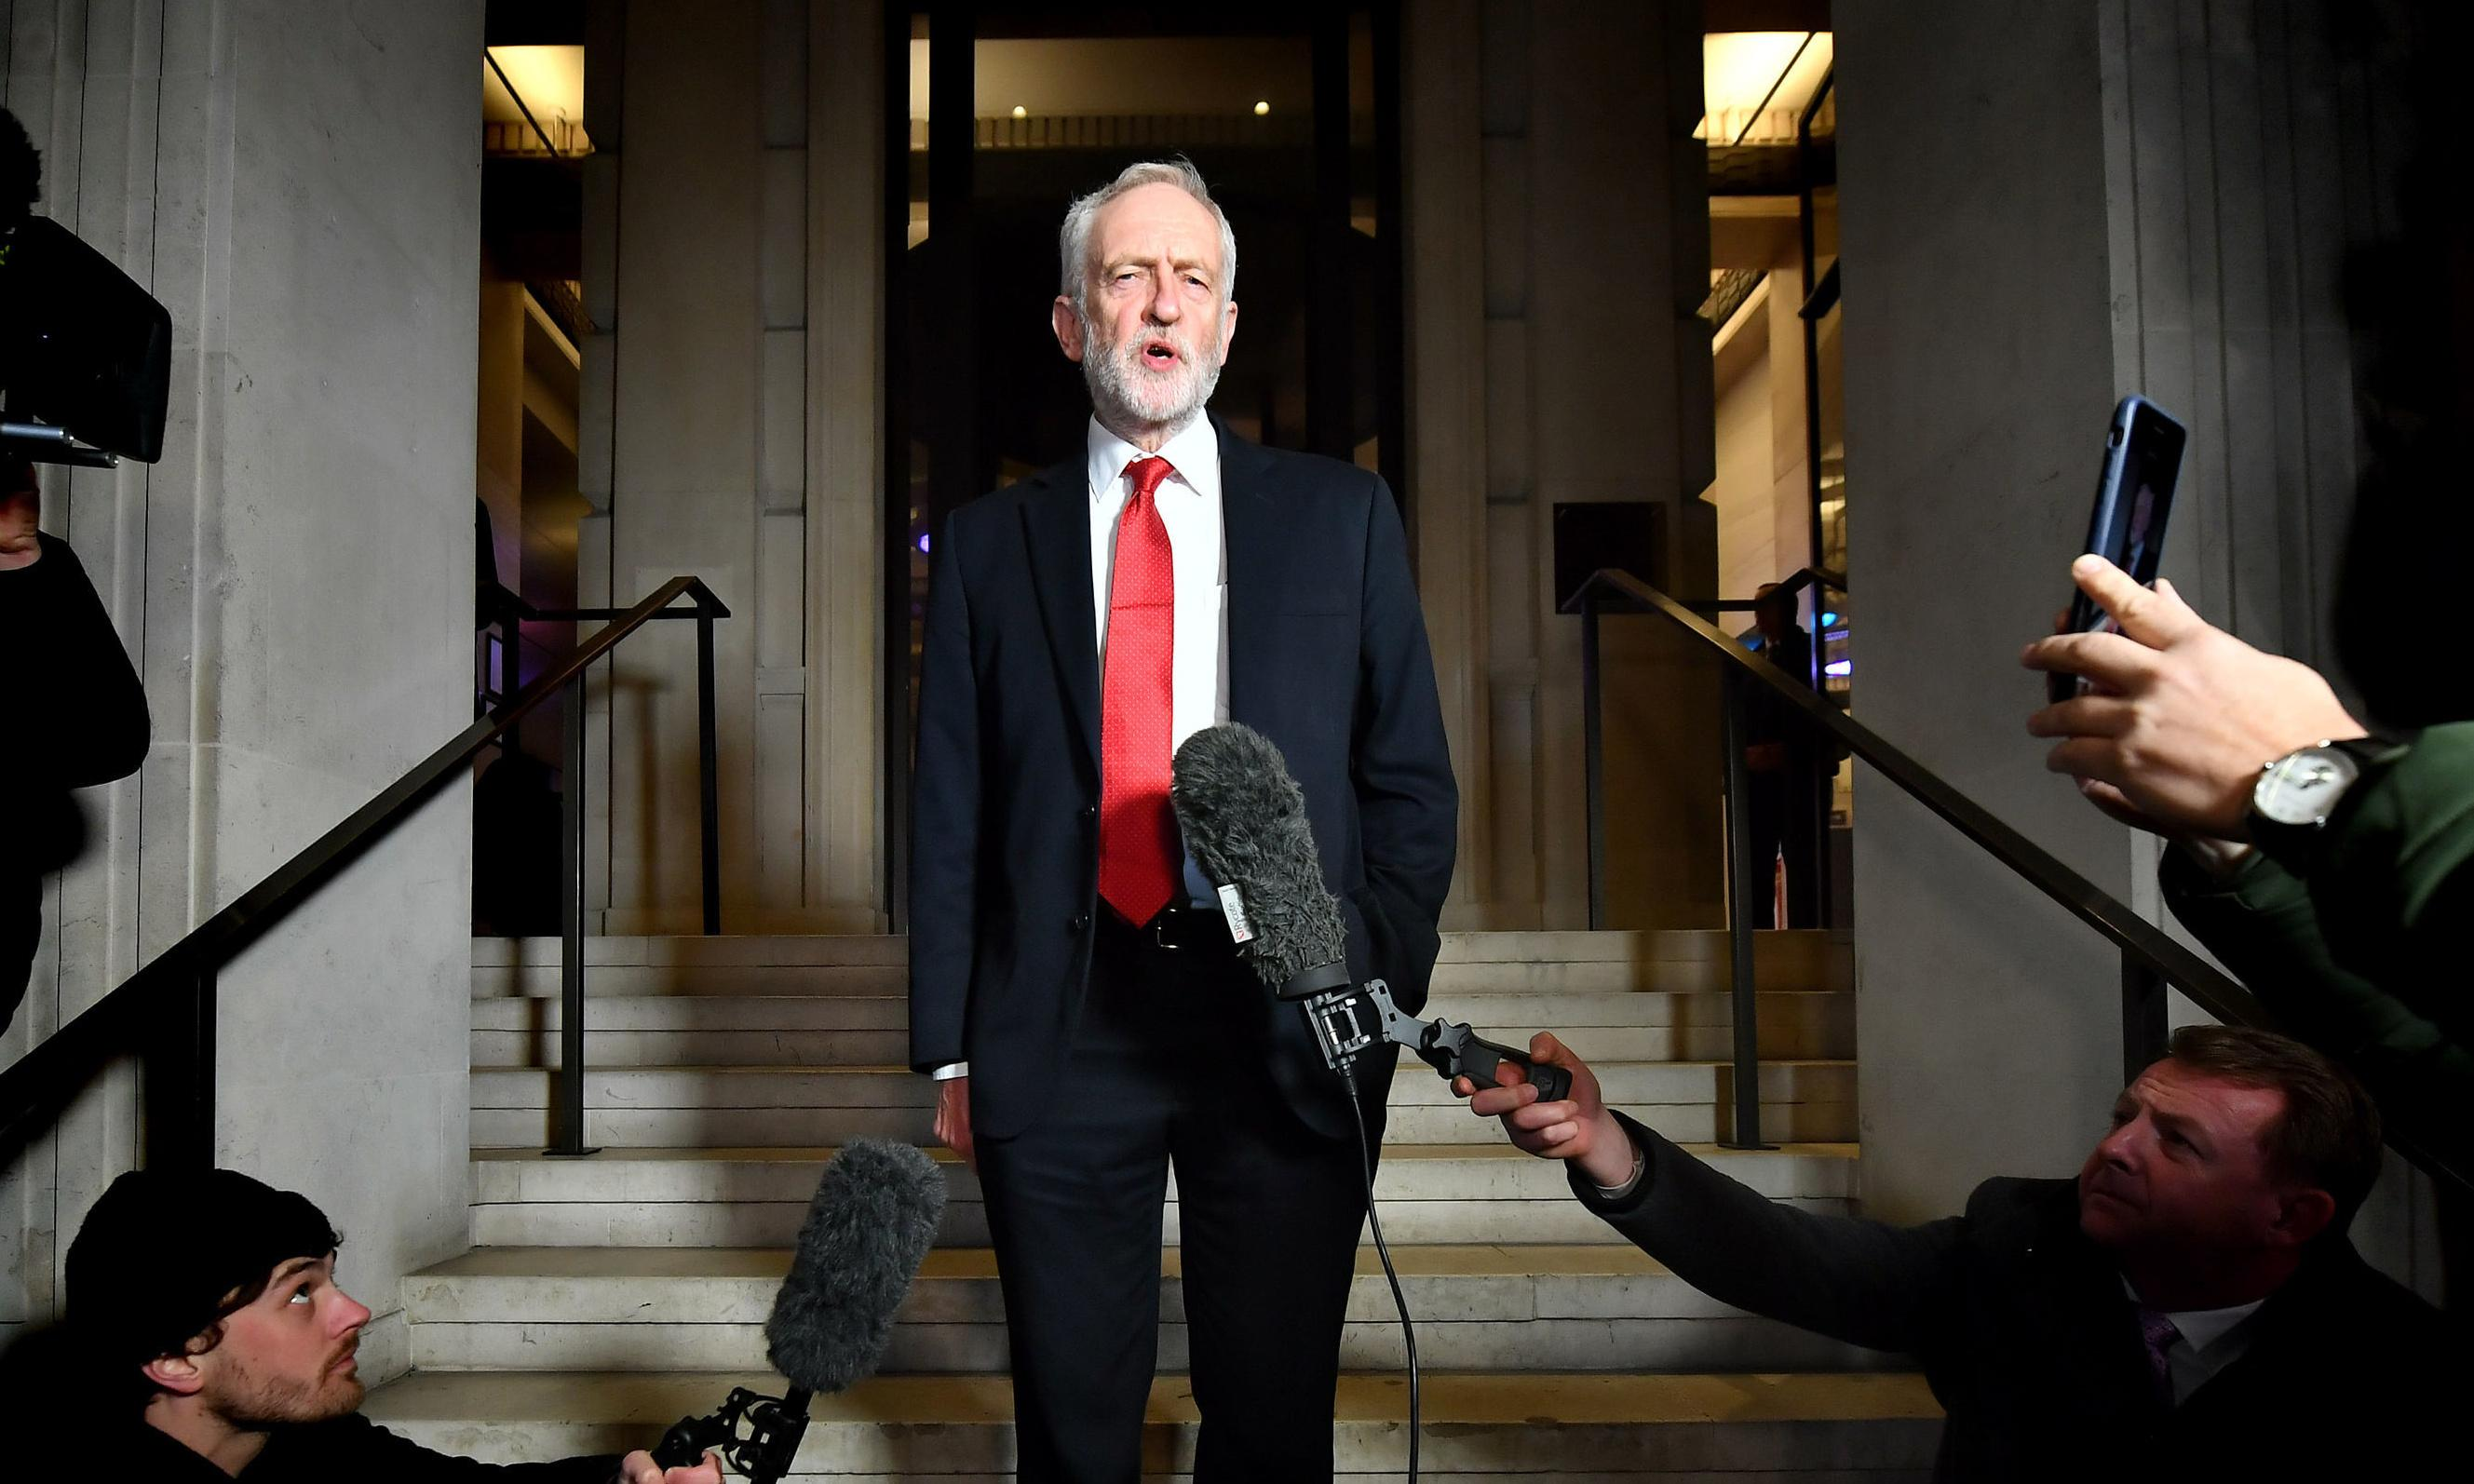 Corbyn counts on TV debates to close the gap as Tories' poll lead increases